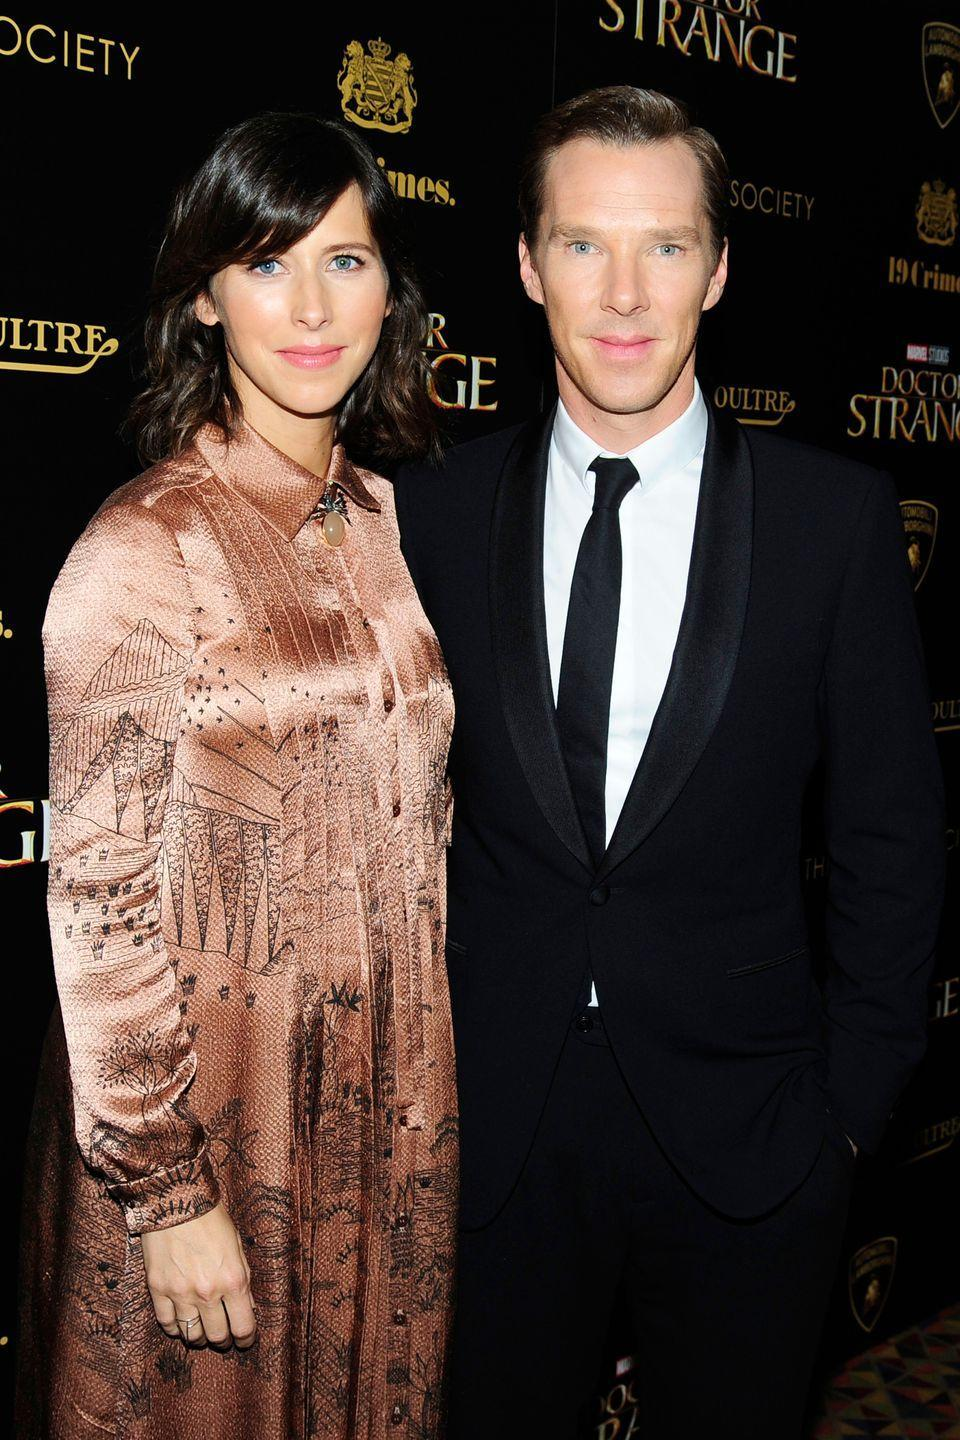 <p>When the internet's boyfriend Benedict Cumberbatch and his wife look directly into the cameras, it's like the same pair of eyes is staring into your soul twice.</p>